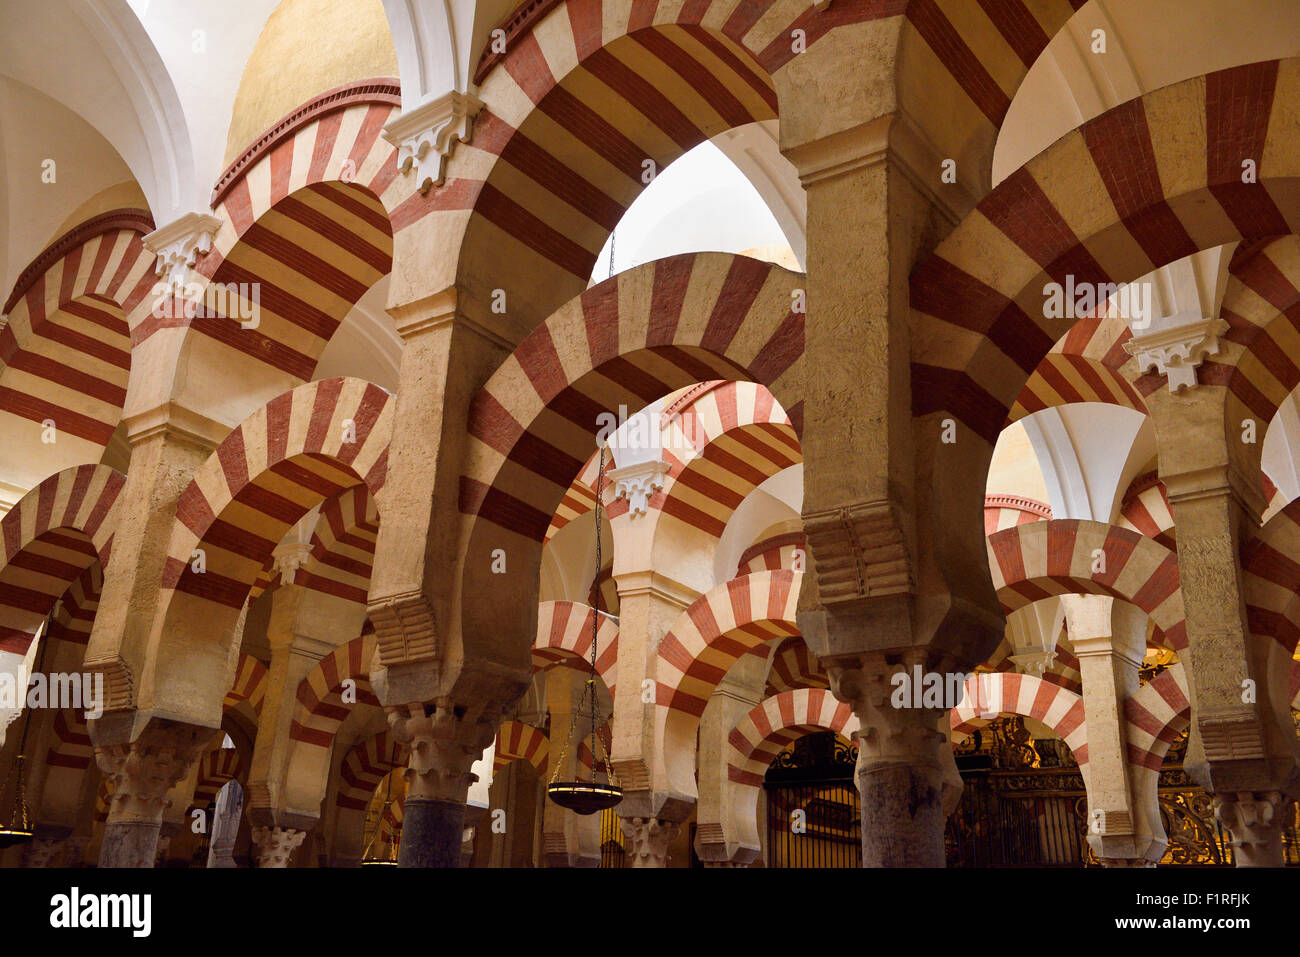 Ceiling with double arches of white stone and red brick at the Prayer Hall of Cordoba Mosque now Our Lady Assumption - Stock Image